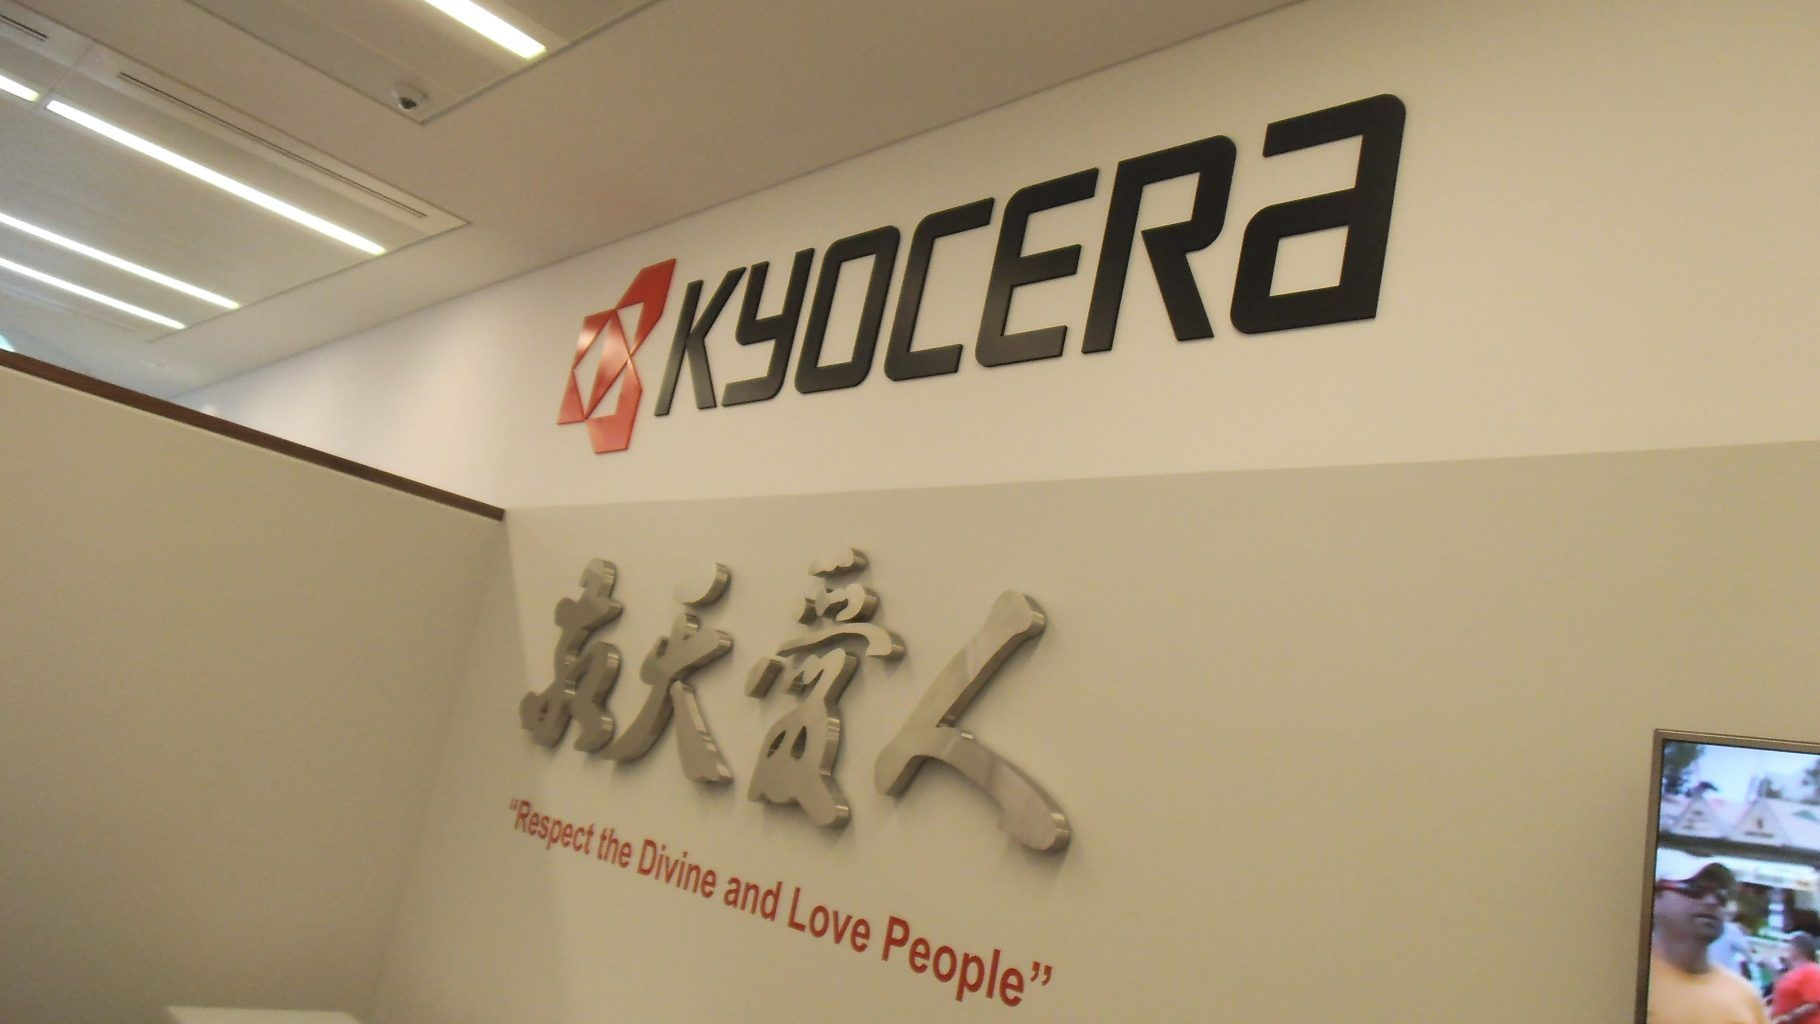 BUILT UP KYOCERA STAINLESS STEEL LETTERING